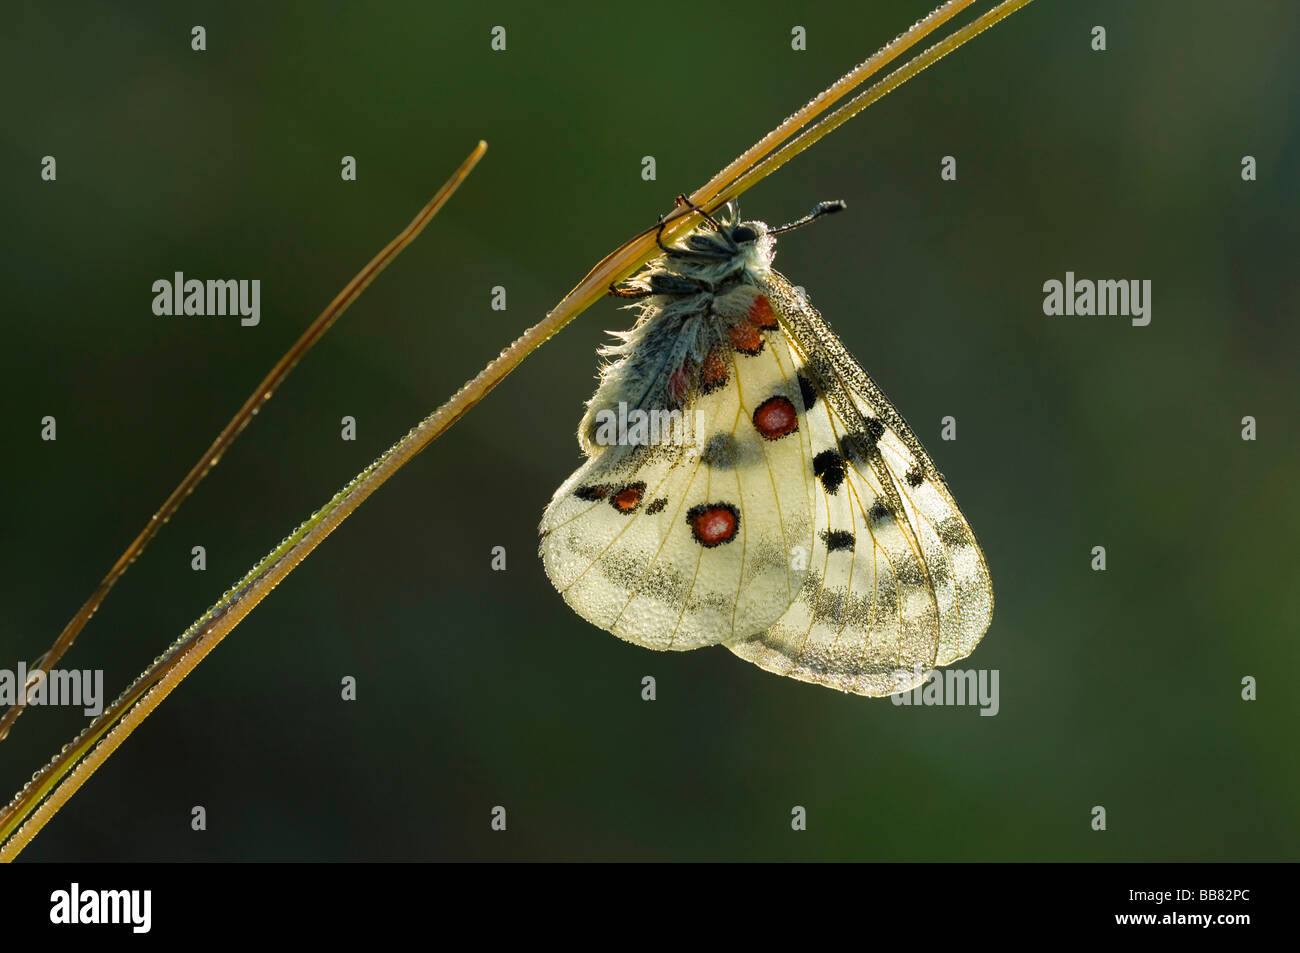 Apollo (Parnassius apollo) resting on a grass stalk covered with dew drops, Swabian Alb, Baden-Wuerttemberg, Germany, Stock Photo